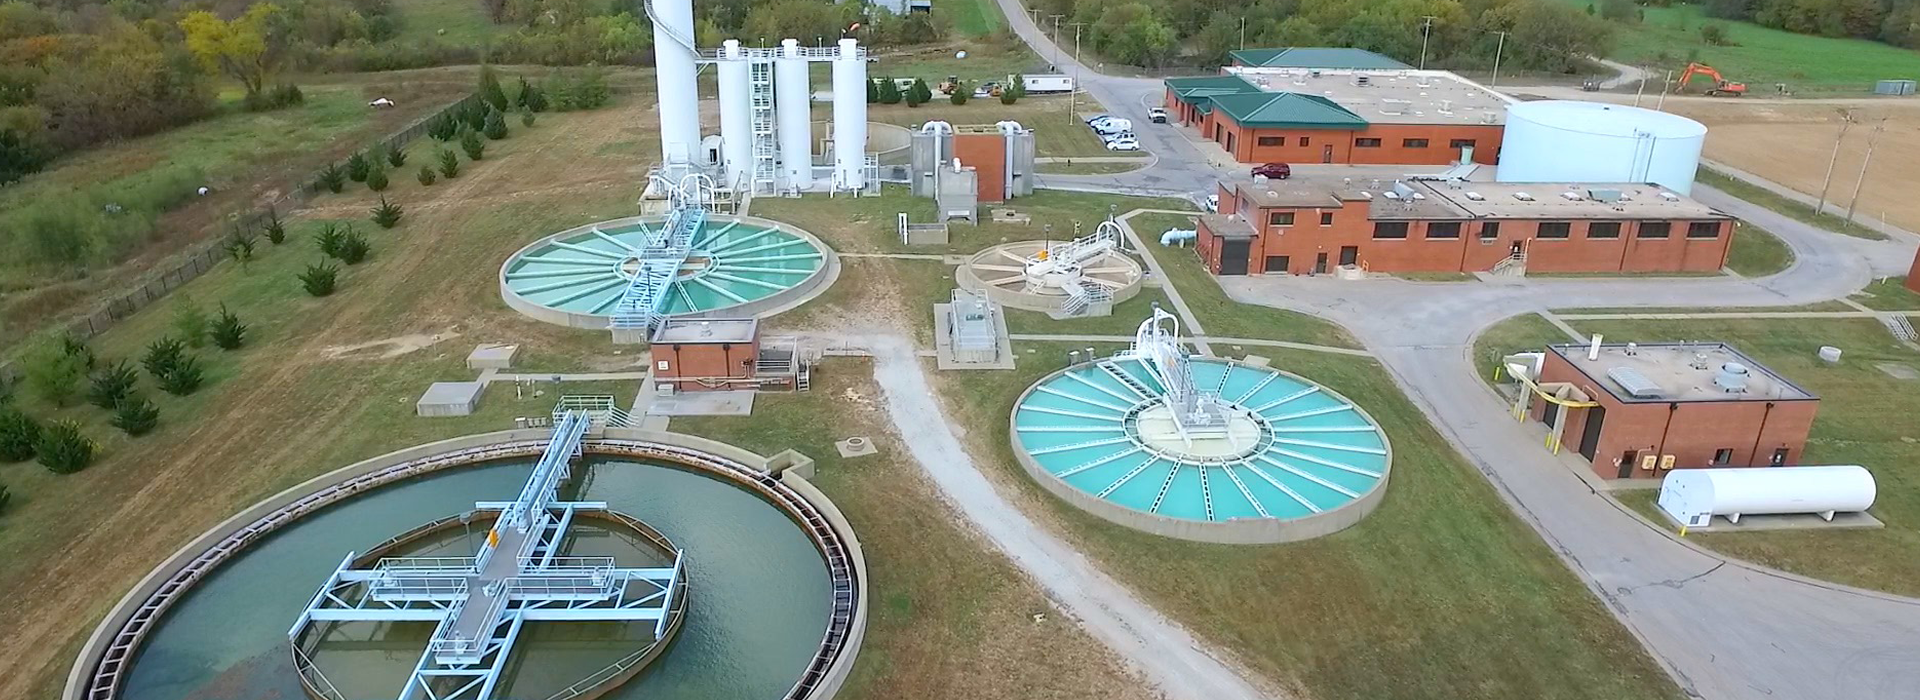 Water Treatment Plant flyover image